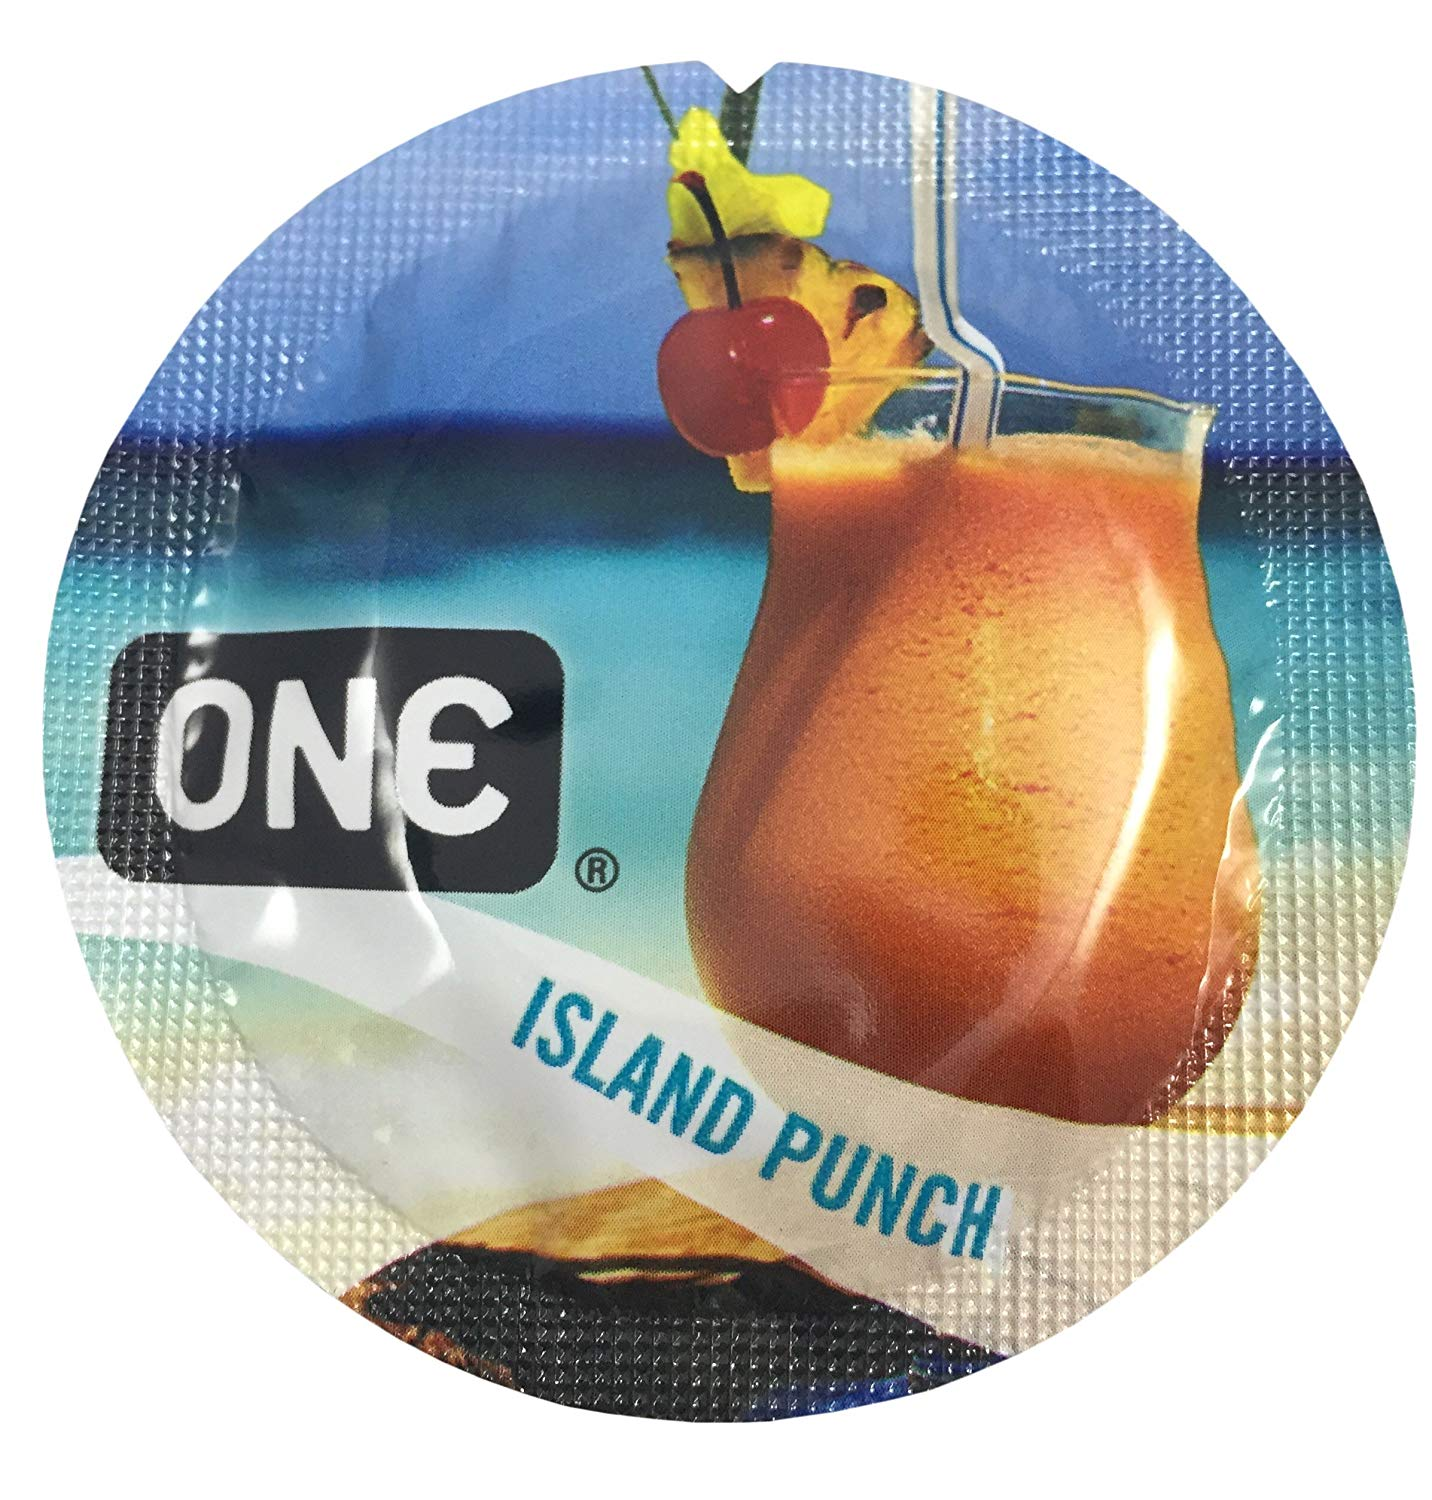 ONE Island Punch + Silver Pocket Case, Tropical Flavored Lubricated Latex Condoms-24 Count